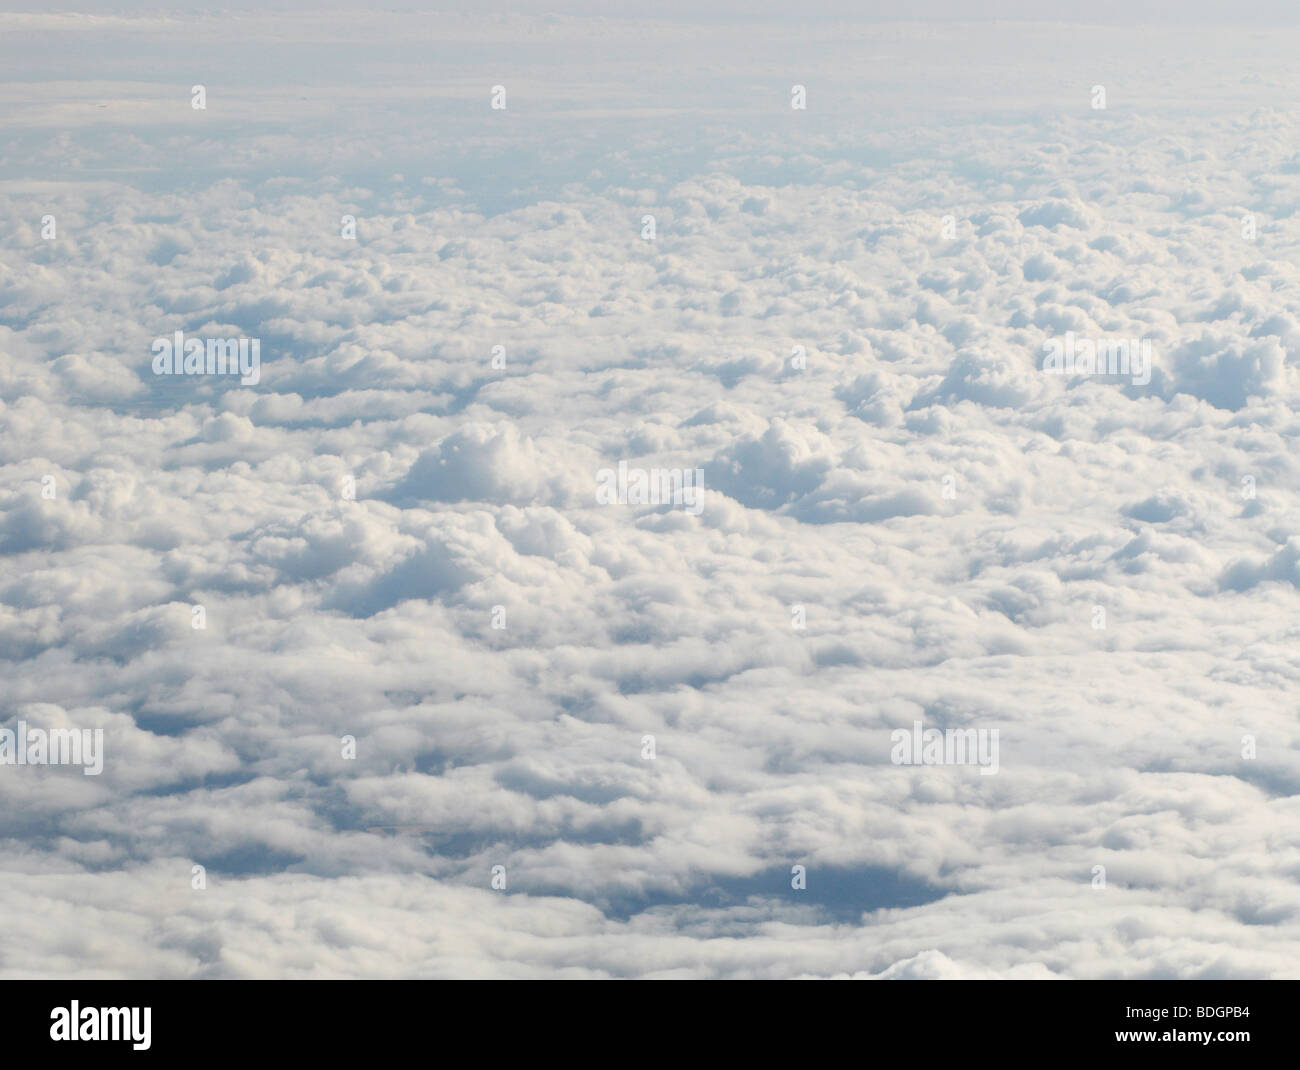 Early morning sunlight hitting a blanket of clouds shot from above - Stock Image